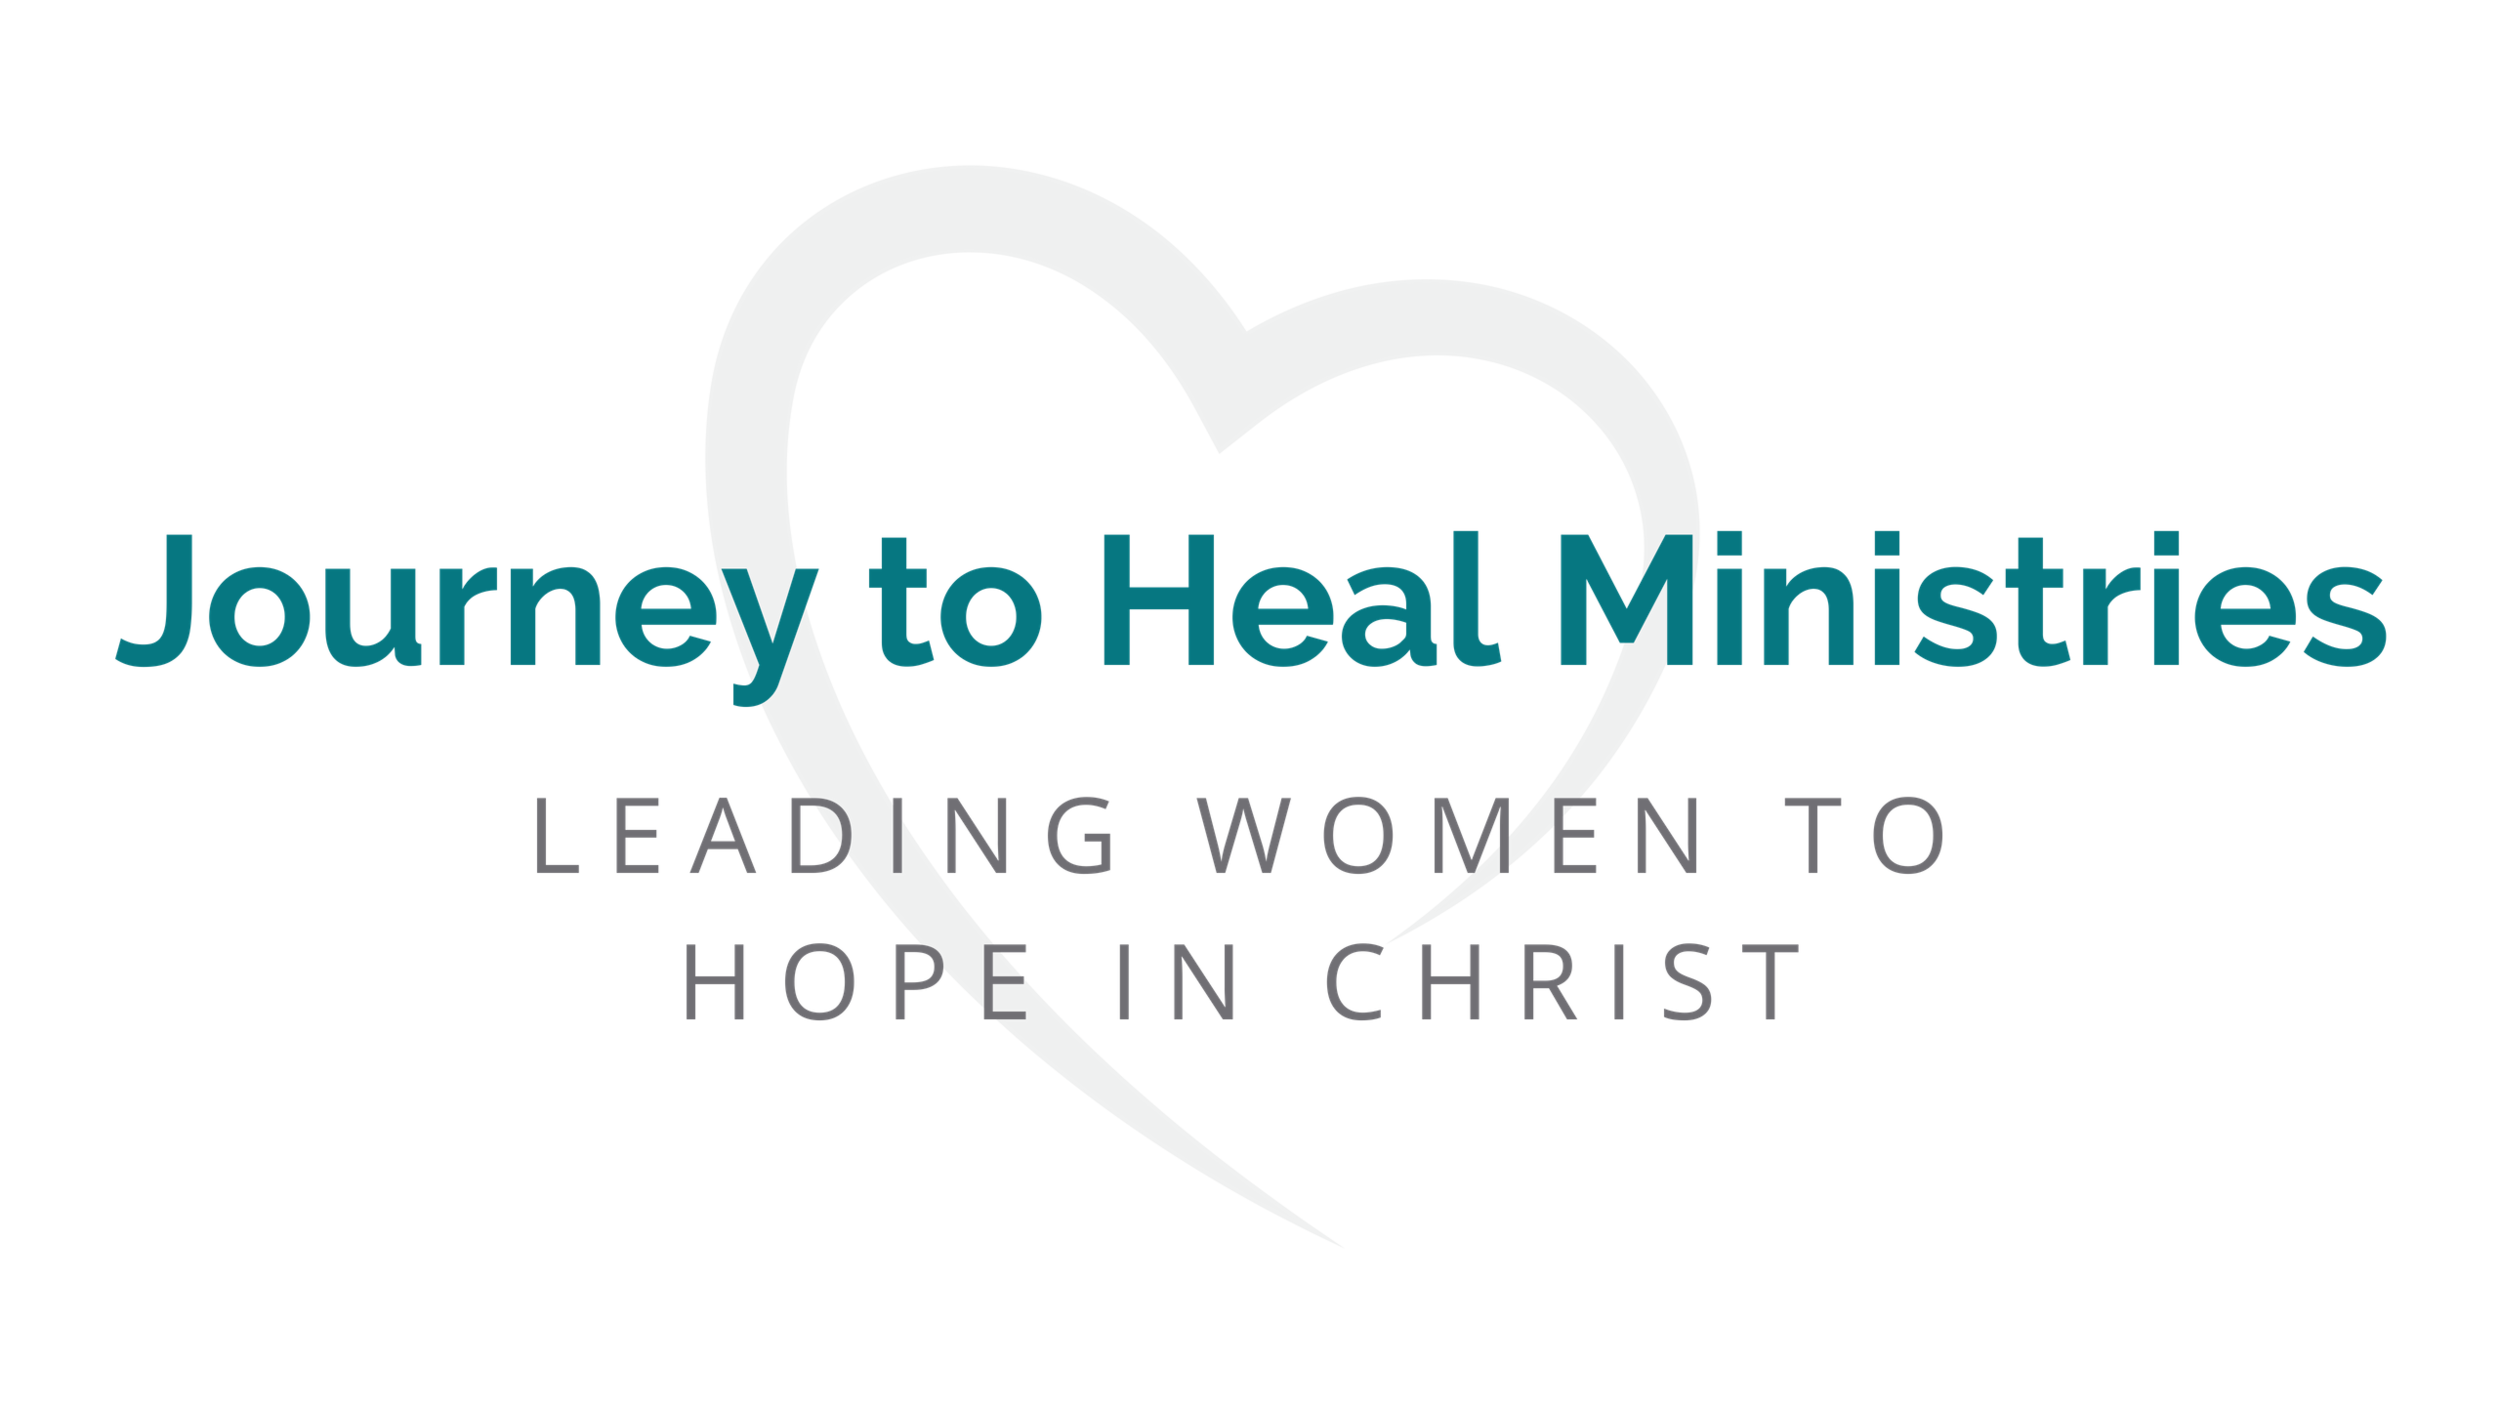 - Journey to Heal Ministries is one of our local nonprofit partners that exists to help women heal from past sexual trauma by leading them to hope and healing found in Jesus Christ.Learn More